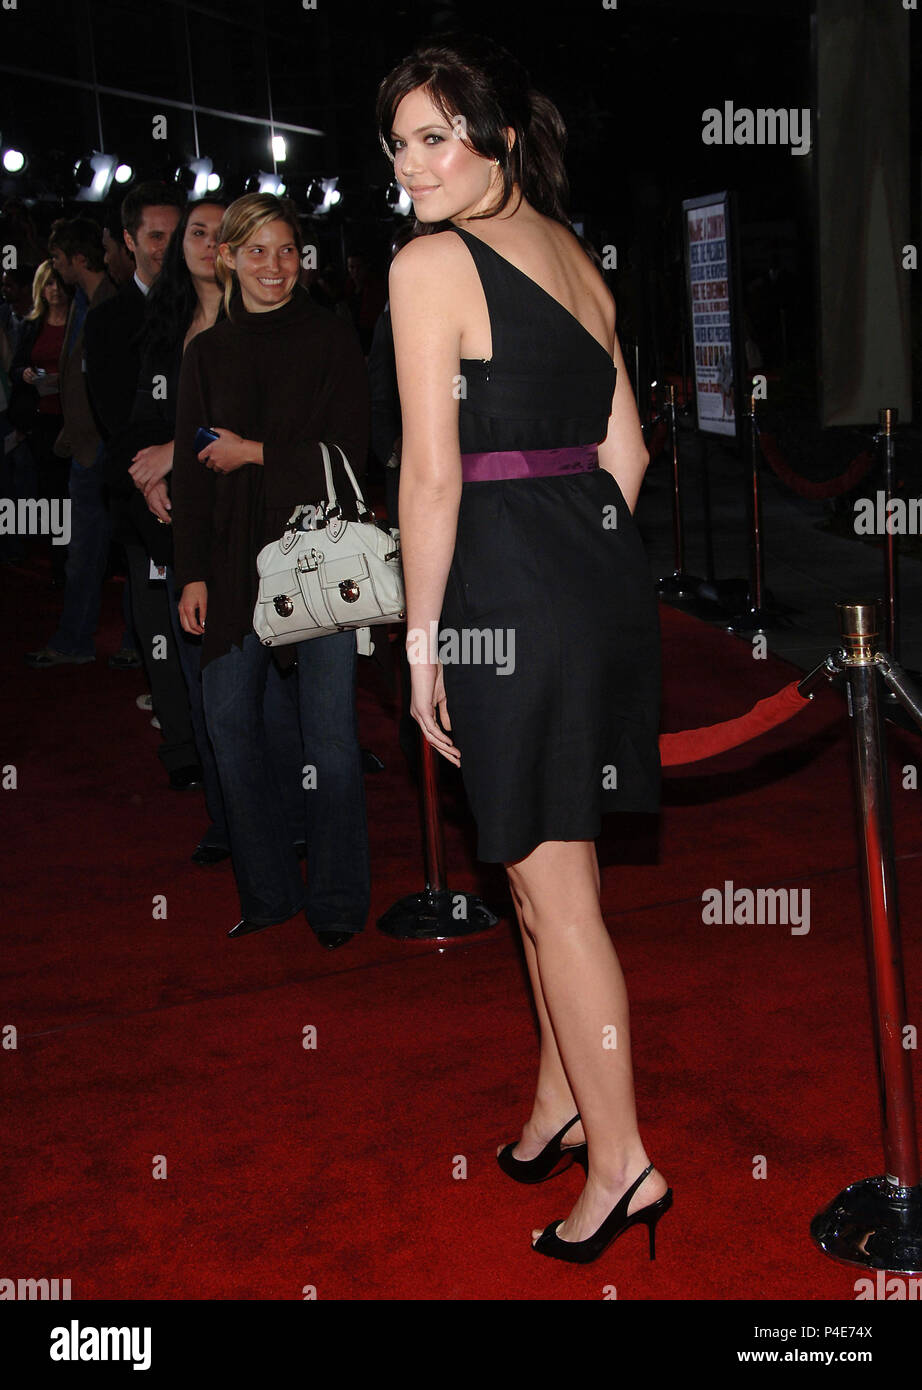 Mandy Moore arriving at the AMERICAN DREAMZ Premiere at the Arclight Theatre in Los Angeles. April 11 2006.03_MooreMandy123 Red Carpet Event, Vertical, USA, Film Industry, Celebrities,  Photography, Bestof, Arts Culture and Entertainment, Topix Celebrities fashion /  Vertical, Best of, Event in Hollywood Life - California,  Red Carpet and backstage, USA, Film Industry, Celebrities,  movie celebrities, TV celebrities, Music celebrities, Photography, Bestof, Arts Culture and Entertainment,  Topix, vertical, one person,, from the year , 2006, inquiry tsuni@Gamma-USA.com Fashion - Full Length - Stock Image